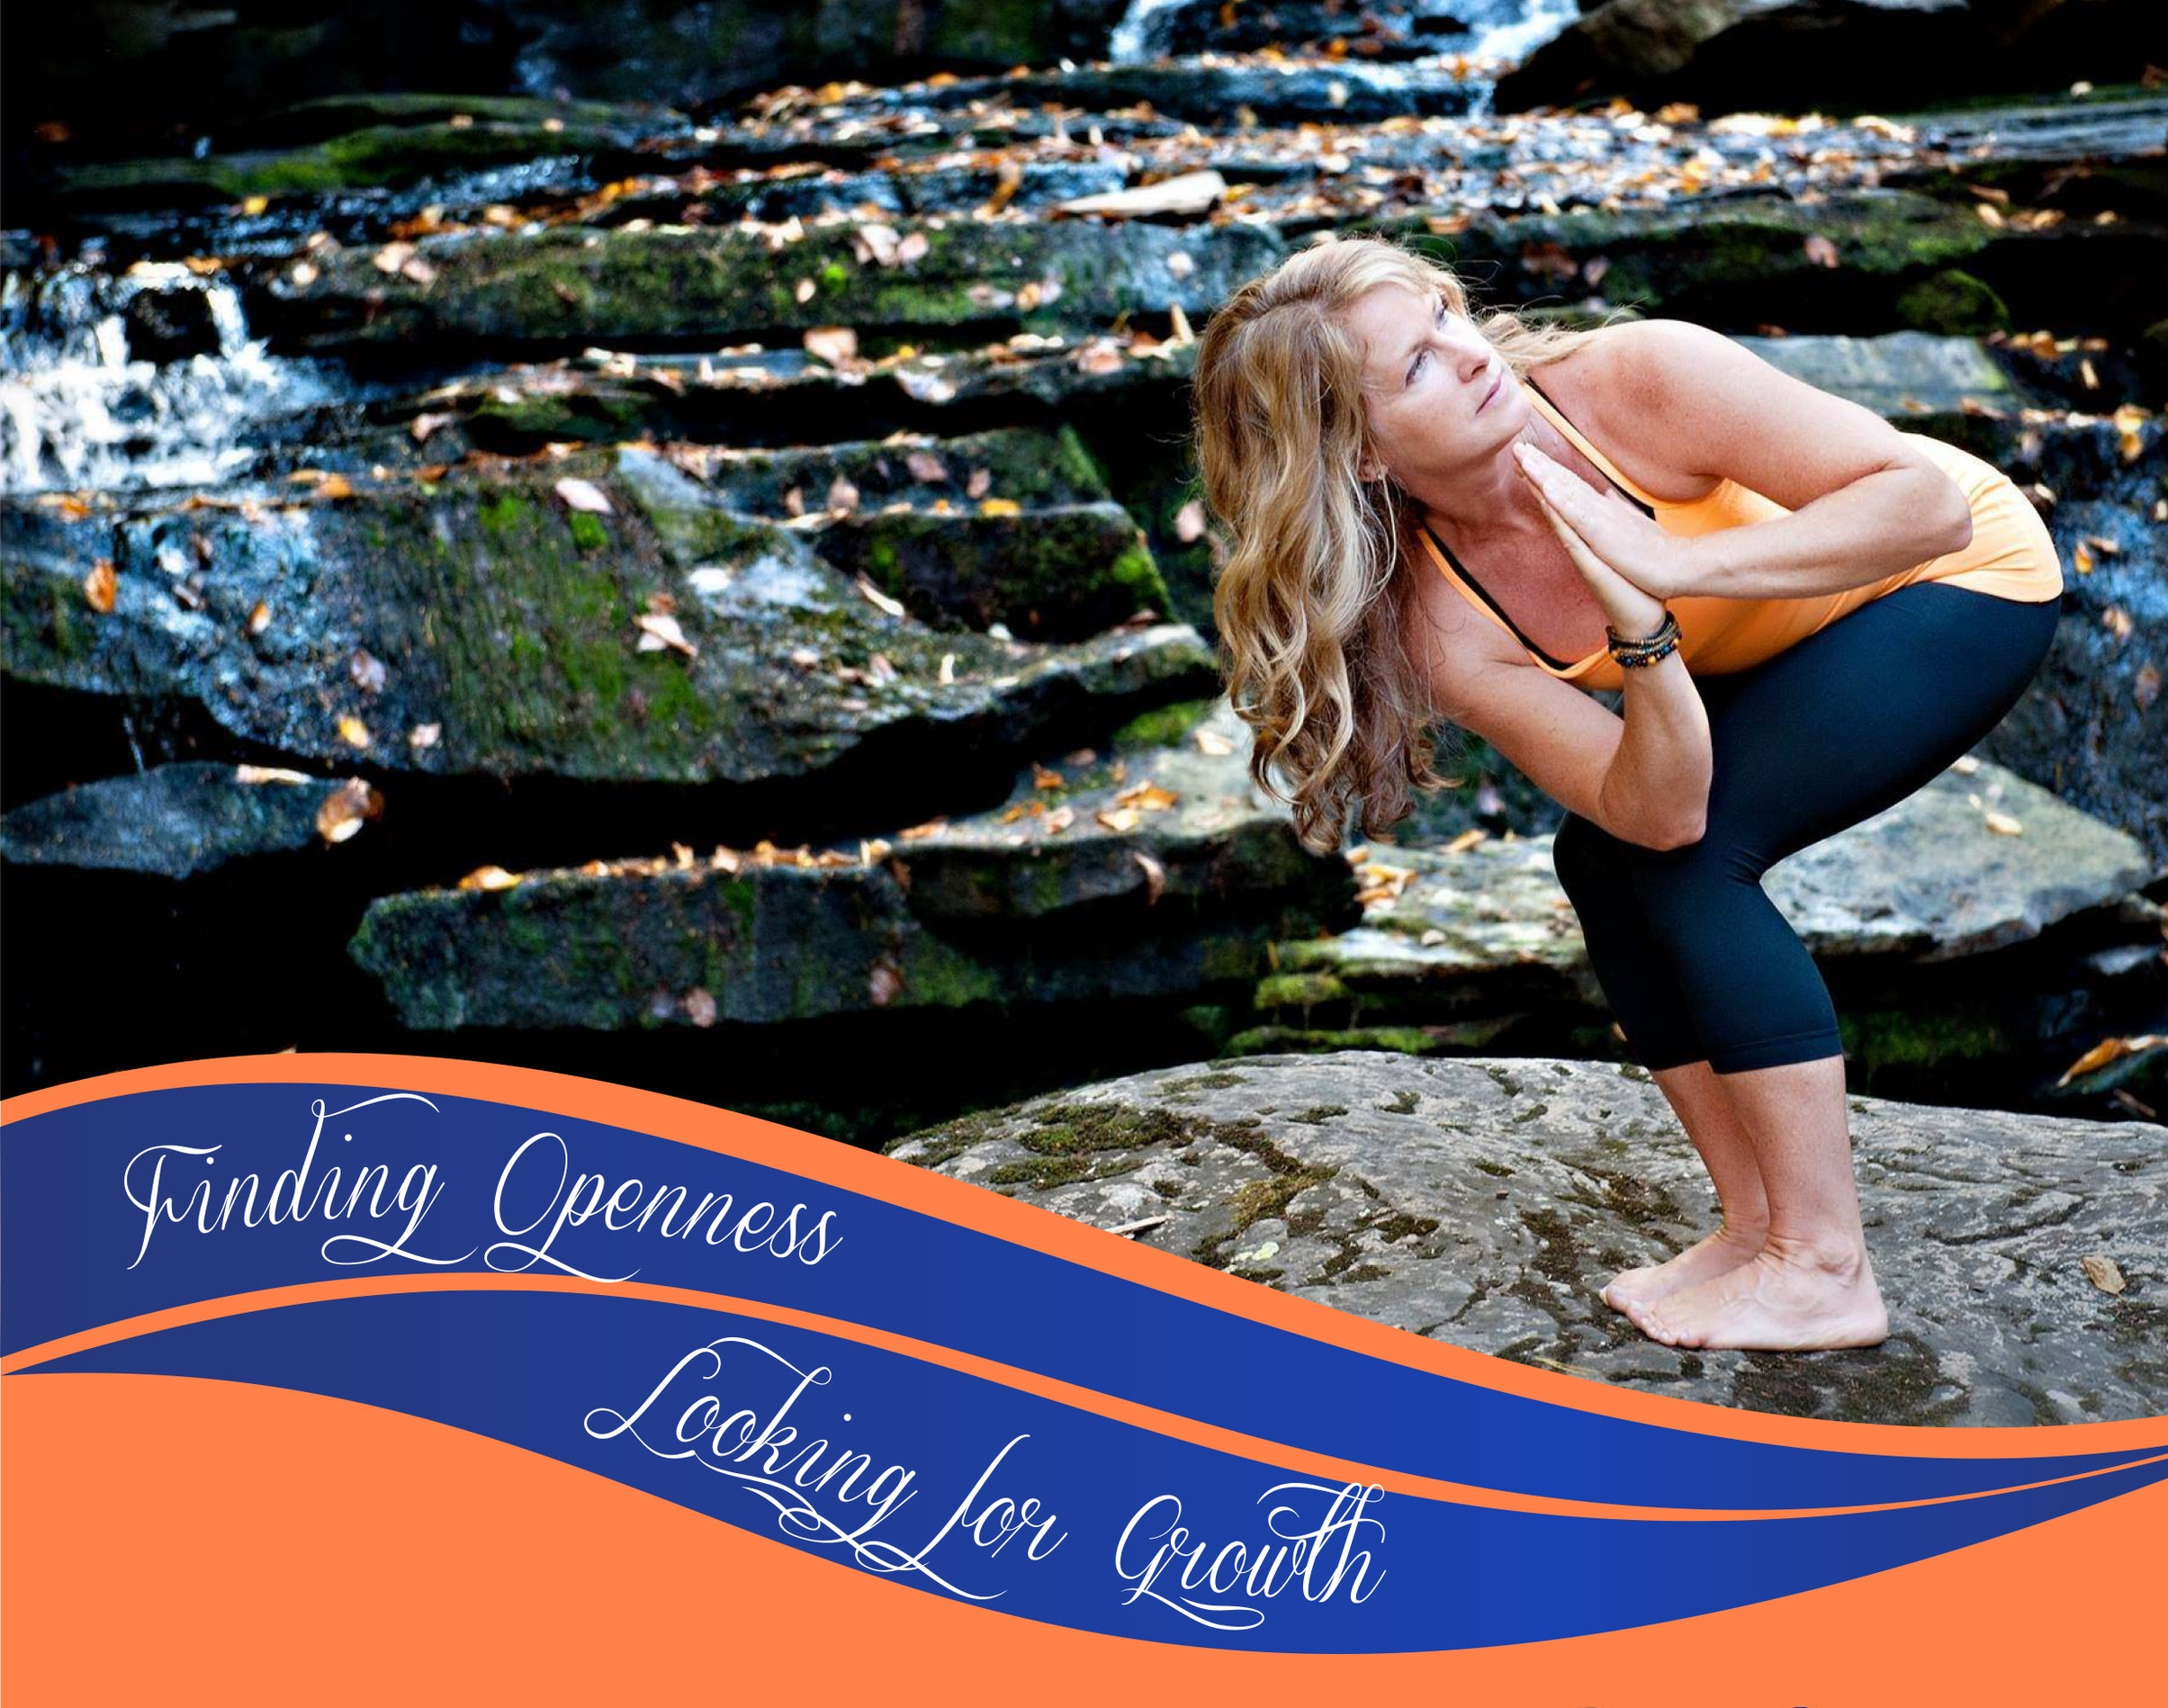 Instructors:  Tabitha Crowell and Lisa Wilby   Duration:  12 Weeks   Frequency : Every Thursday at 7pm and Sunday at 9am   Cost: $189.00     Registration: In person at our location at 600 Bishop Drive!     Style:   Our Yoga Flow program is tailored for the beginner. No prior Yoga or Exercise experience is required. Classes will be geared towards awakening the core, lengthening the body along the spine, and on gaining an increase in overall body strength, balance and flexibility. Participants will be given the time and guidance to progress at their own pace.  Things to consider before you start:  · In form your physician that you intend on starting Yoga  · Deep breathing is part of the practice so please refrain from wearing perfume or cologne.  · Avoid any food for at least 1 to 2 hours before class. Give yourself time to digest before you practice.  · Before you begin it is nice to have a shower. Be fresh. Evacuate bowels and bladder.  · Remove all jewelry and glasses if possible.  · Wear lose, comfortable clothing, so the body is not restricted.  · Wear slayers and socks at the start of class until body warms up.  · Practice in a relaxed manner    See you in Class!    If you have any questions please contact us below!